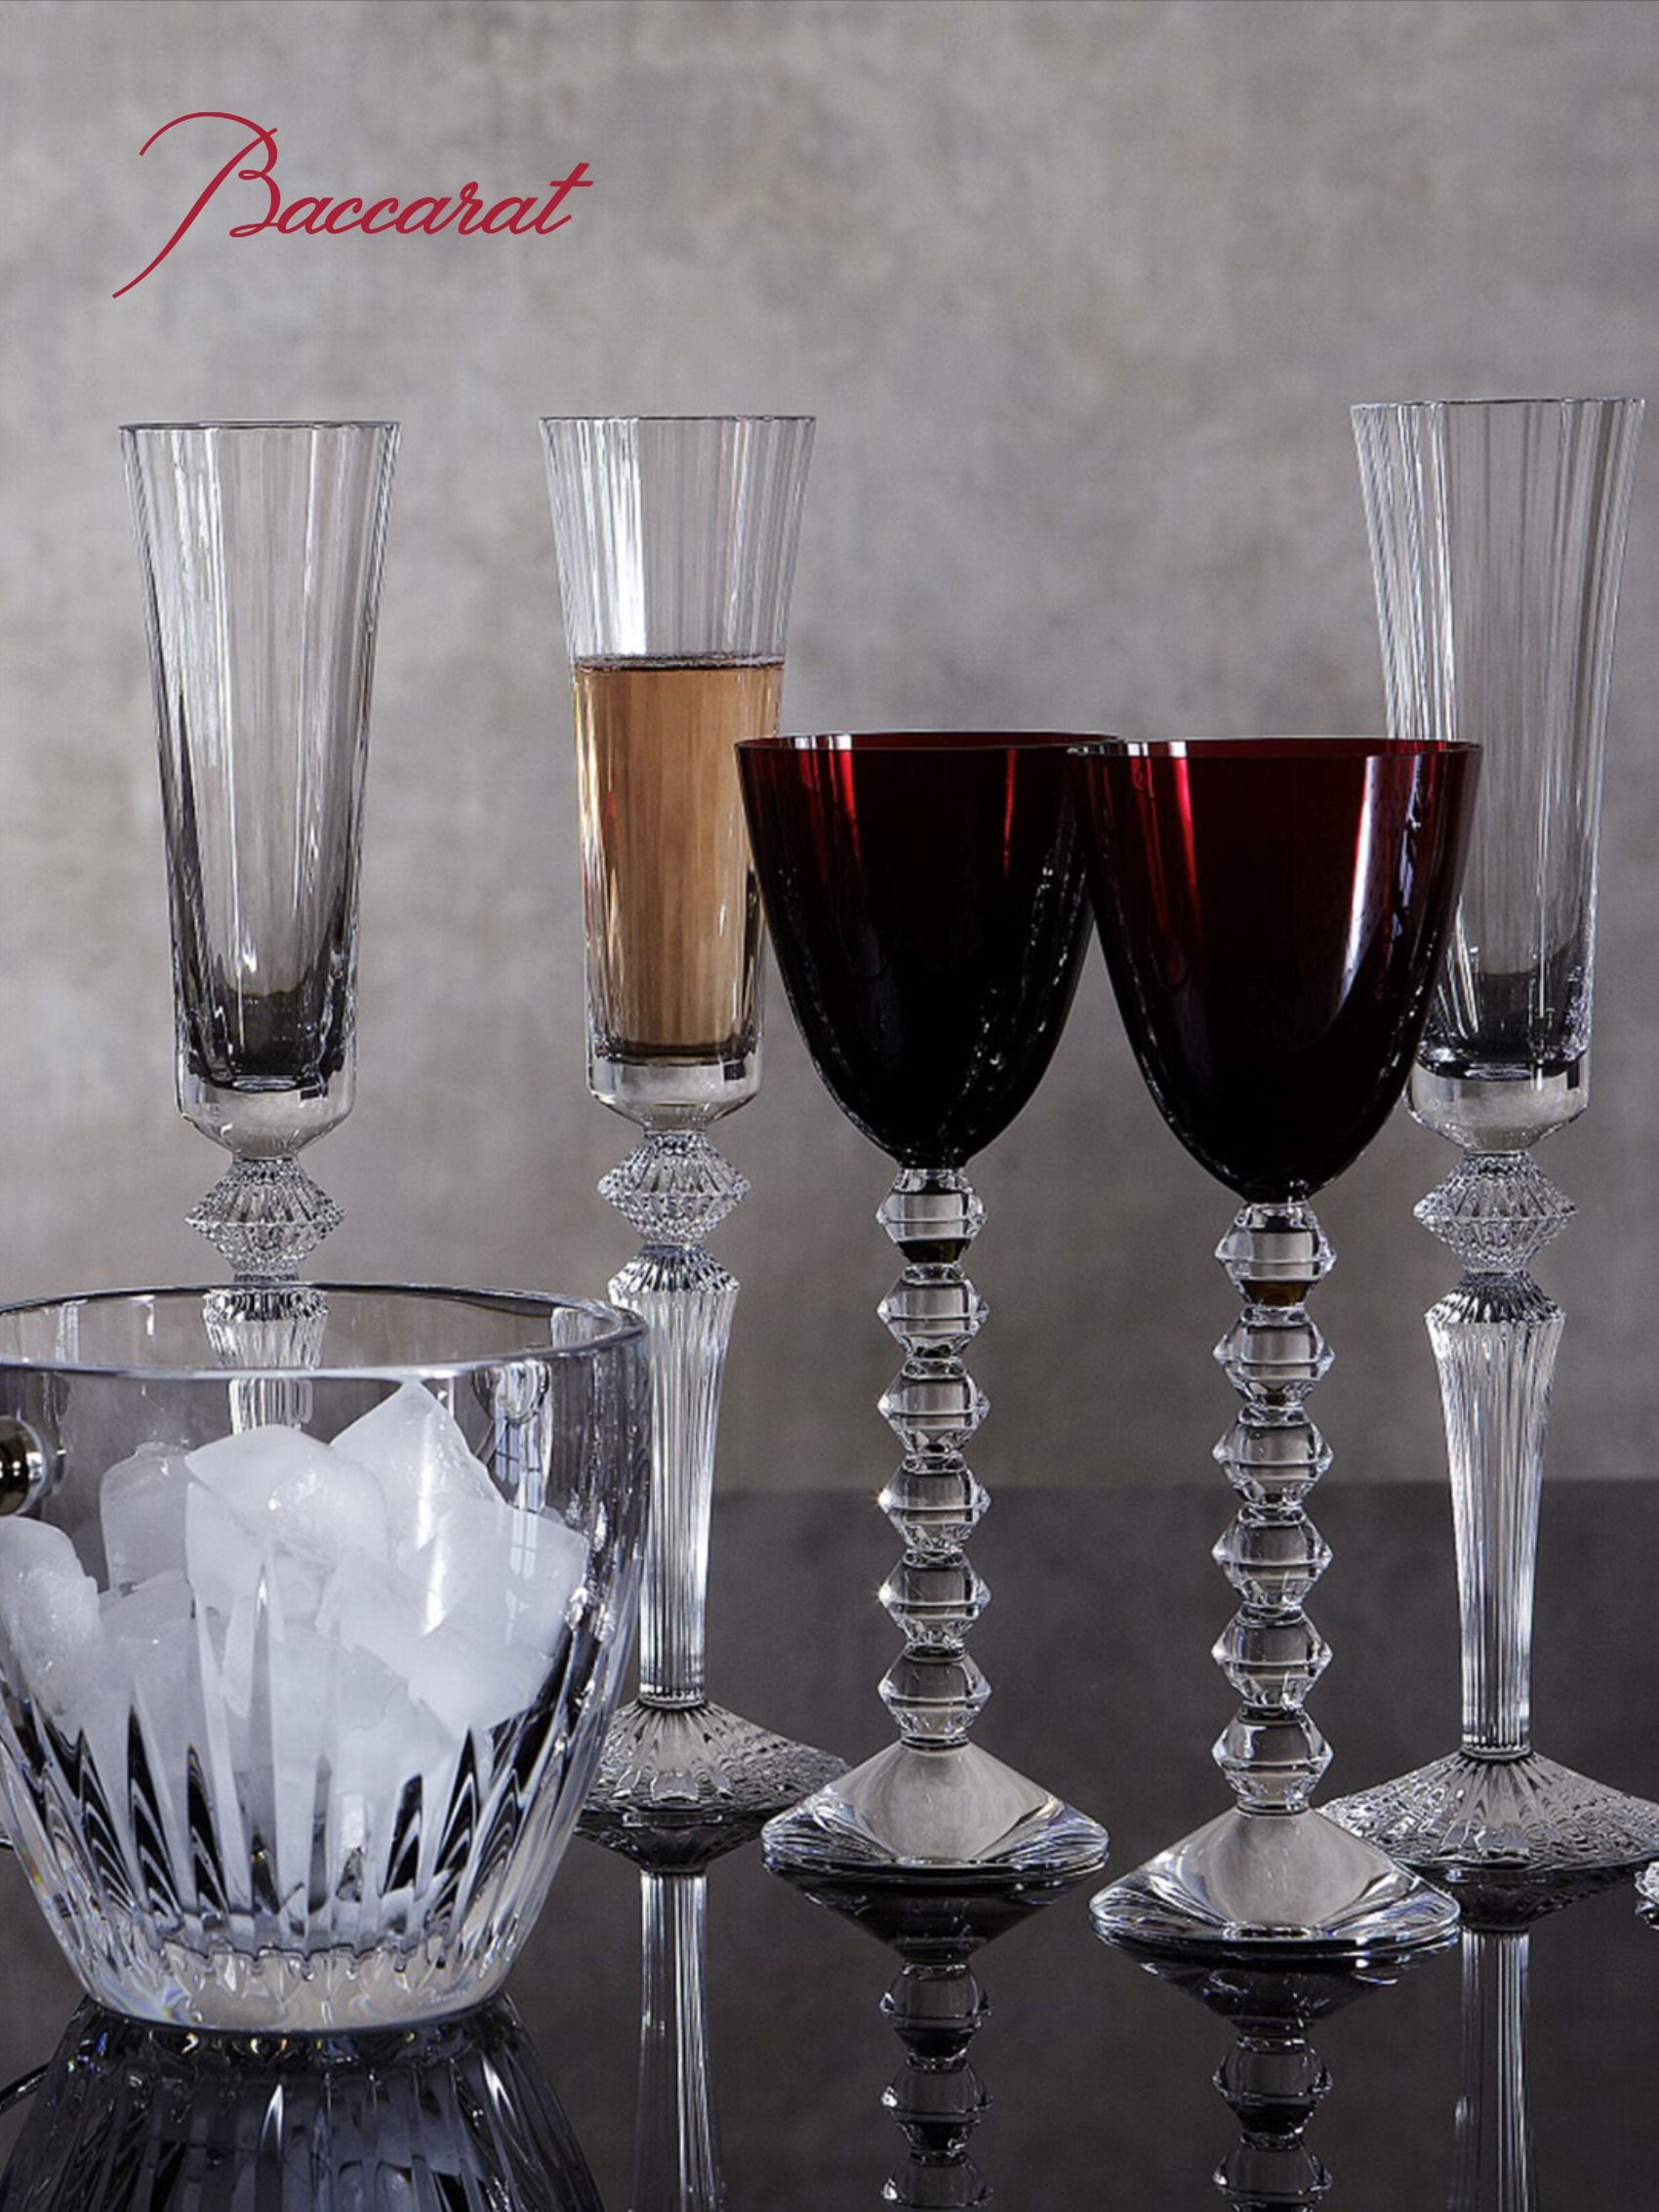 Mille Nuits Baccarat Champagnerflote Champagne Glass Design